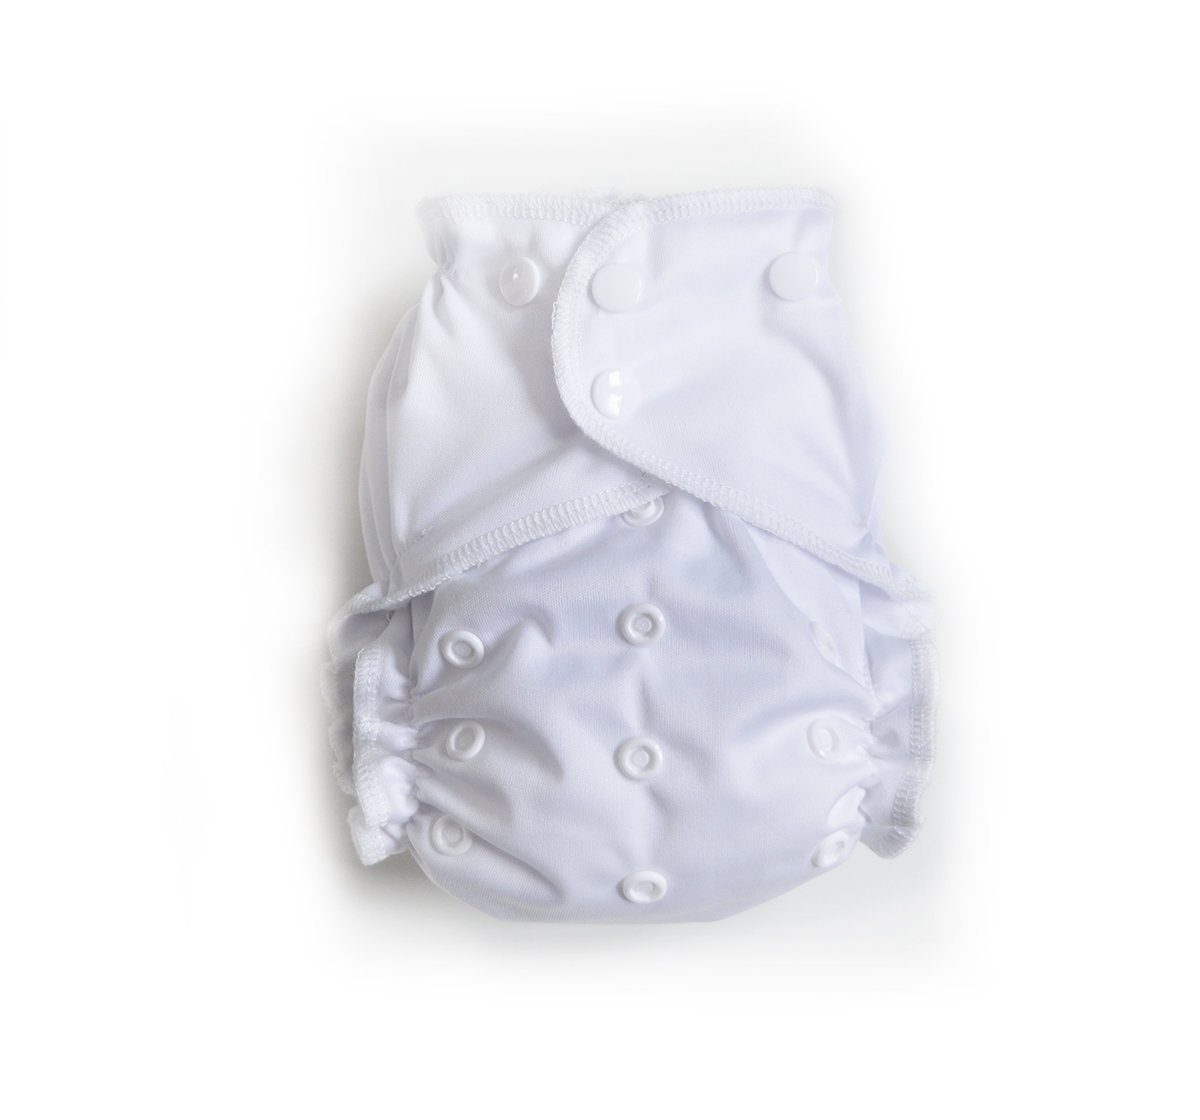 Easy Pocket™ One Size Cloth Diaper - Classic White 00446